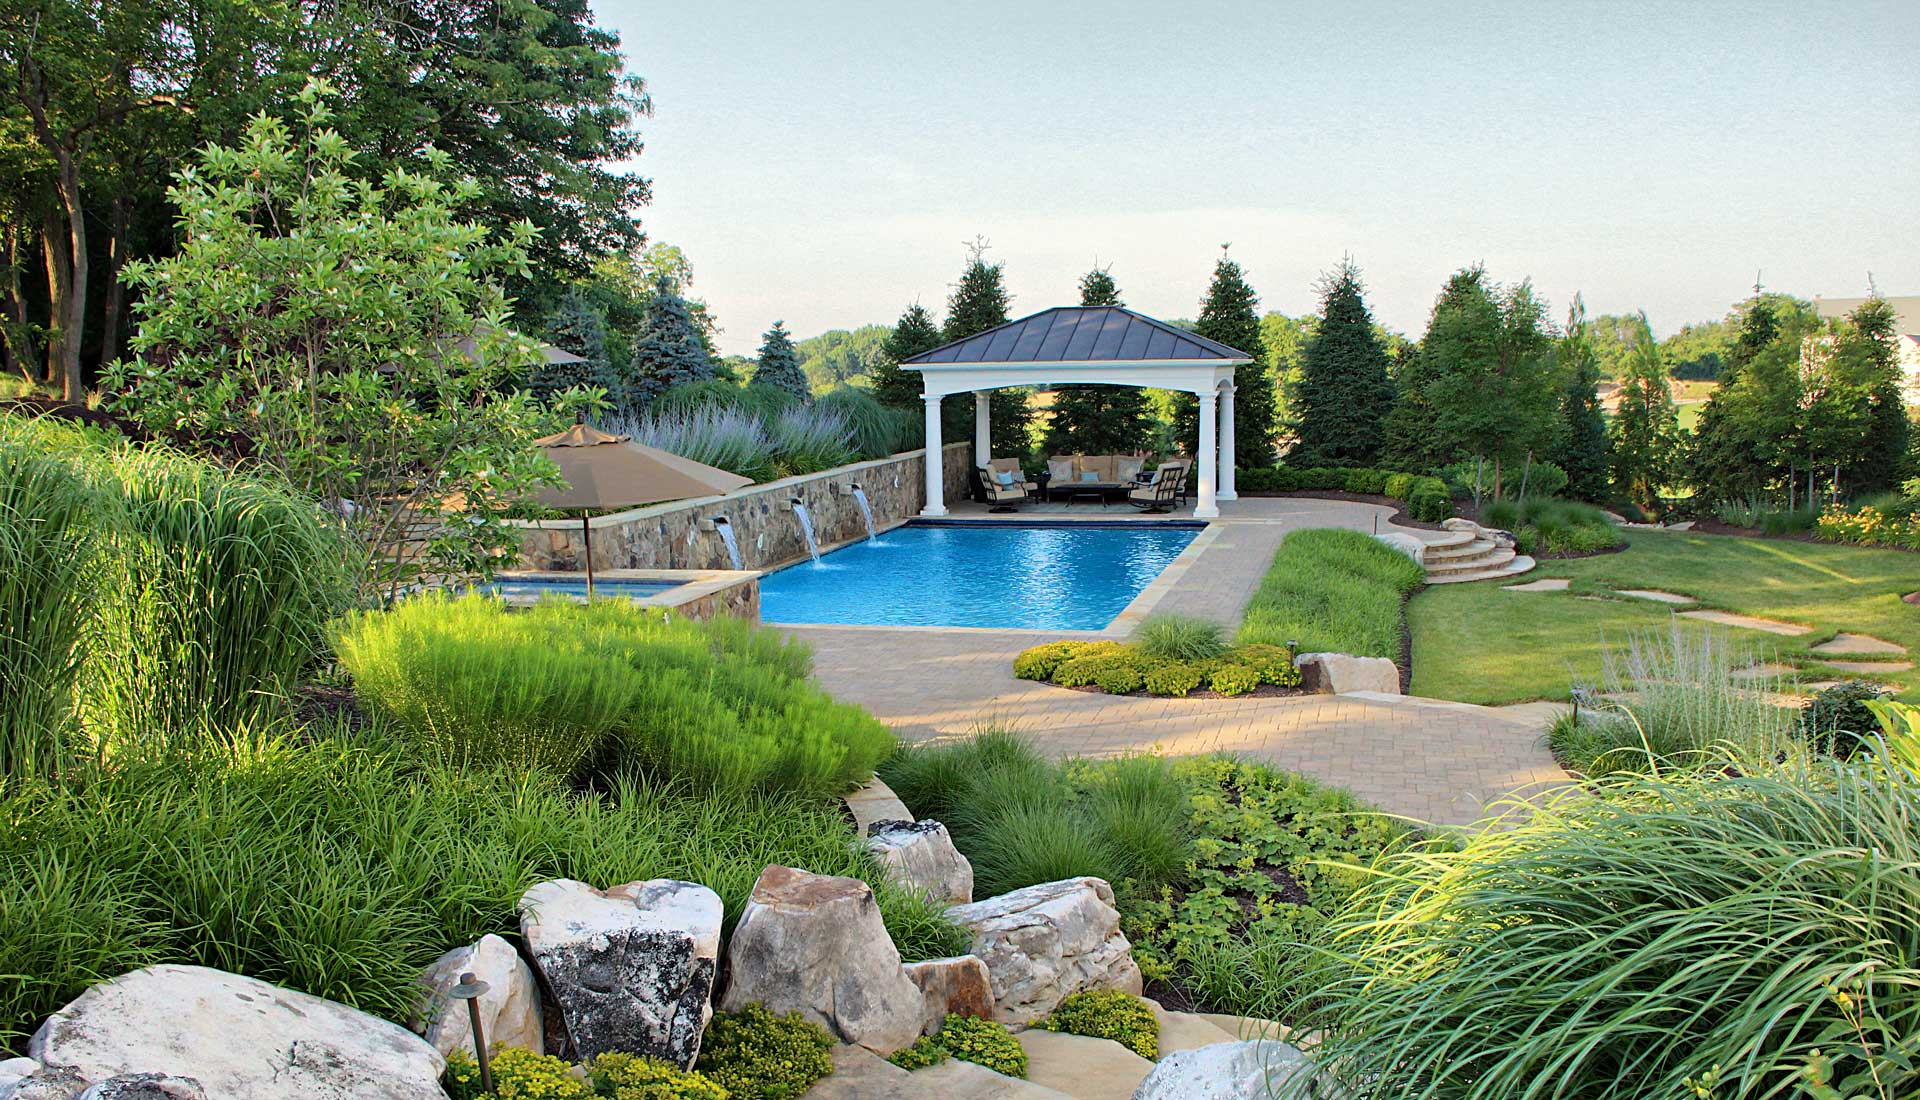 Boulders, steps and beautifully landscaped pool